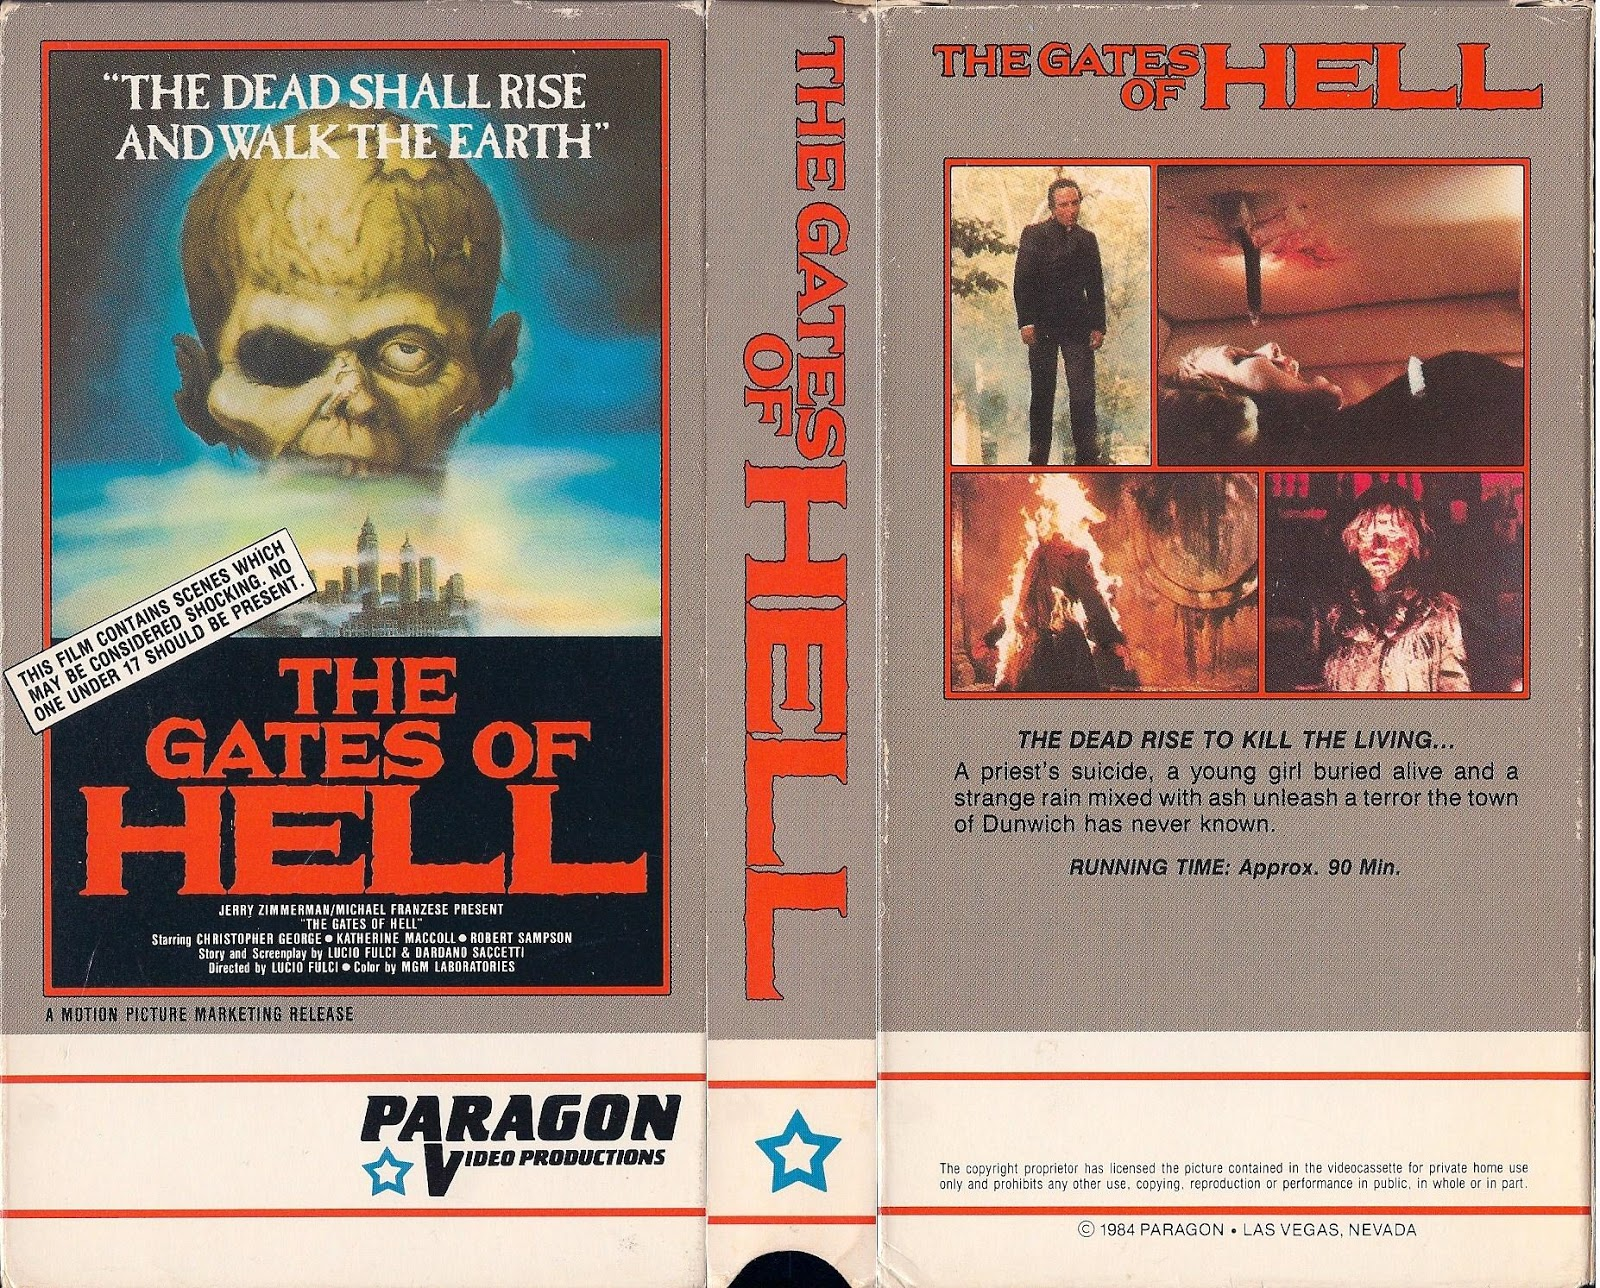 THE GATES OF HELL Paragon Video Productions Video Release: 1984 90 Minutes, Unrated (17+)